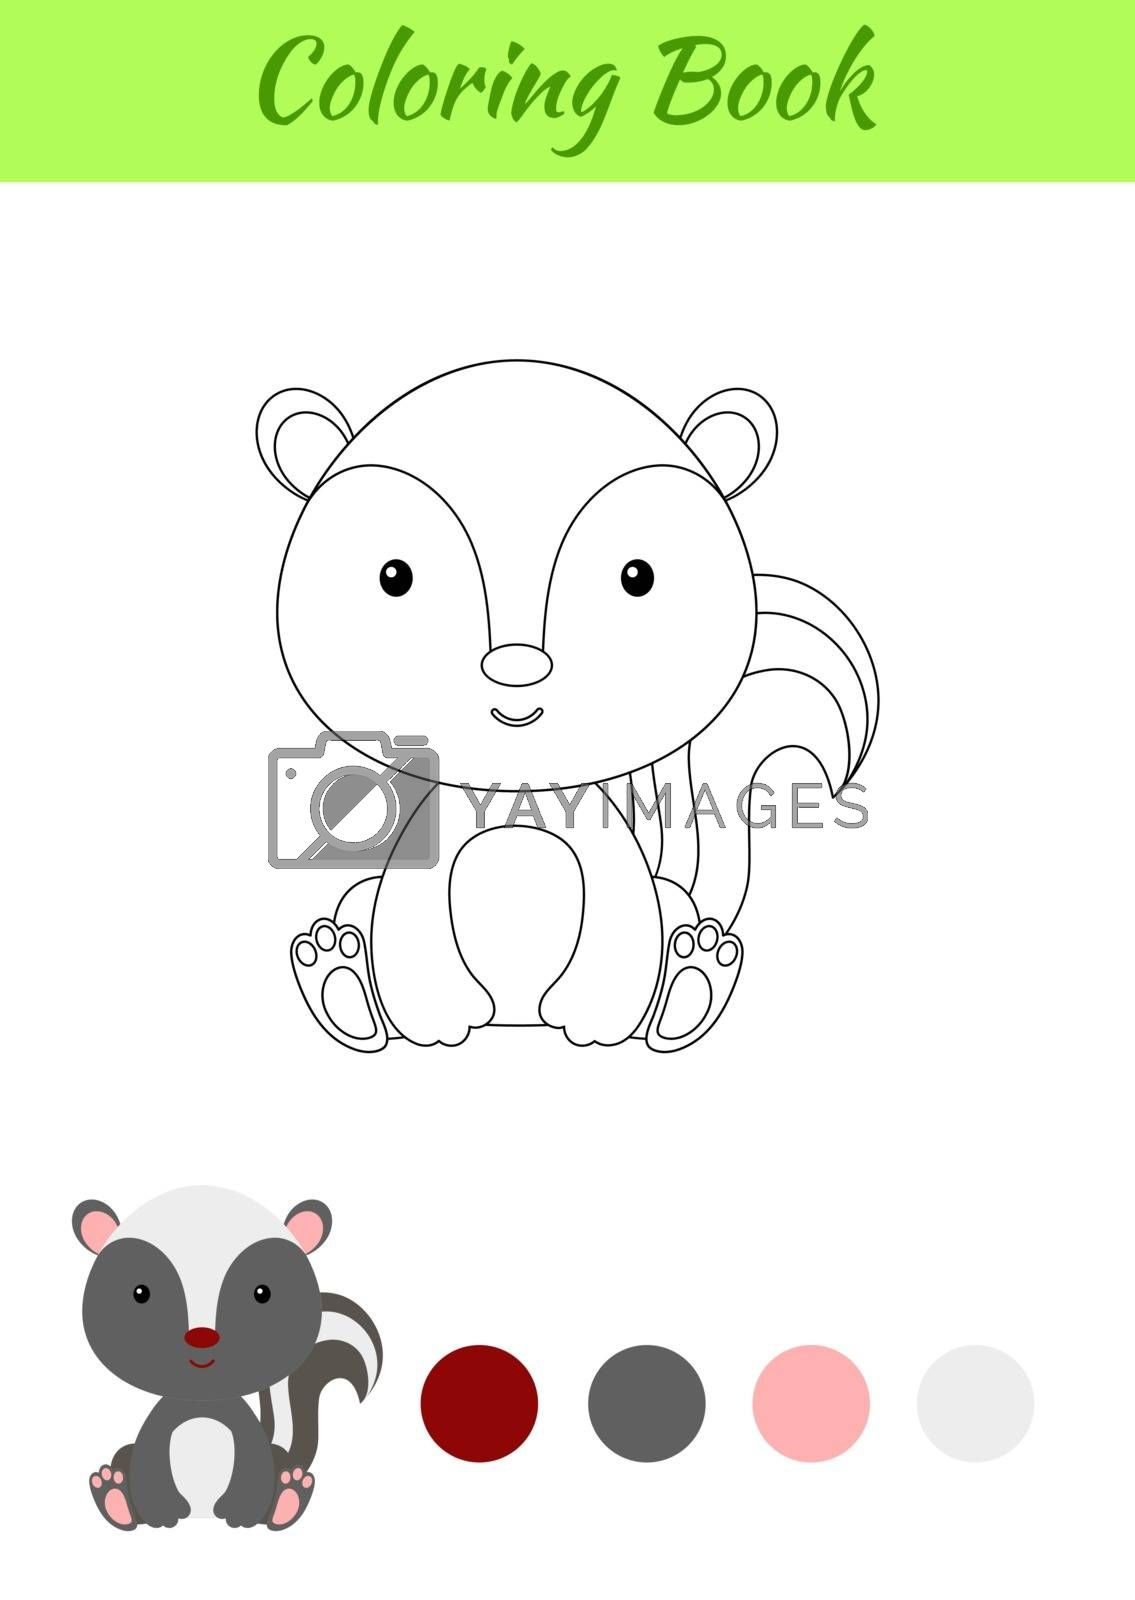 Coloring page little sitting baby skunk. Coloring book for kids. by Melnyk